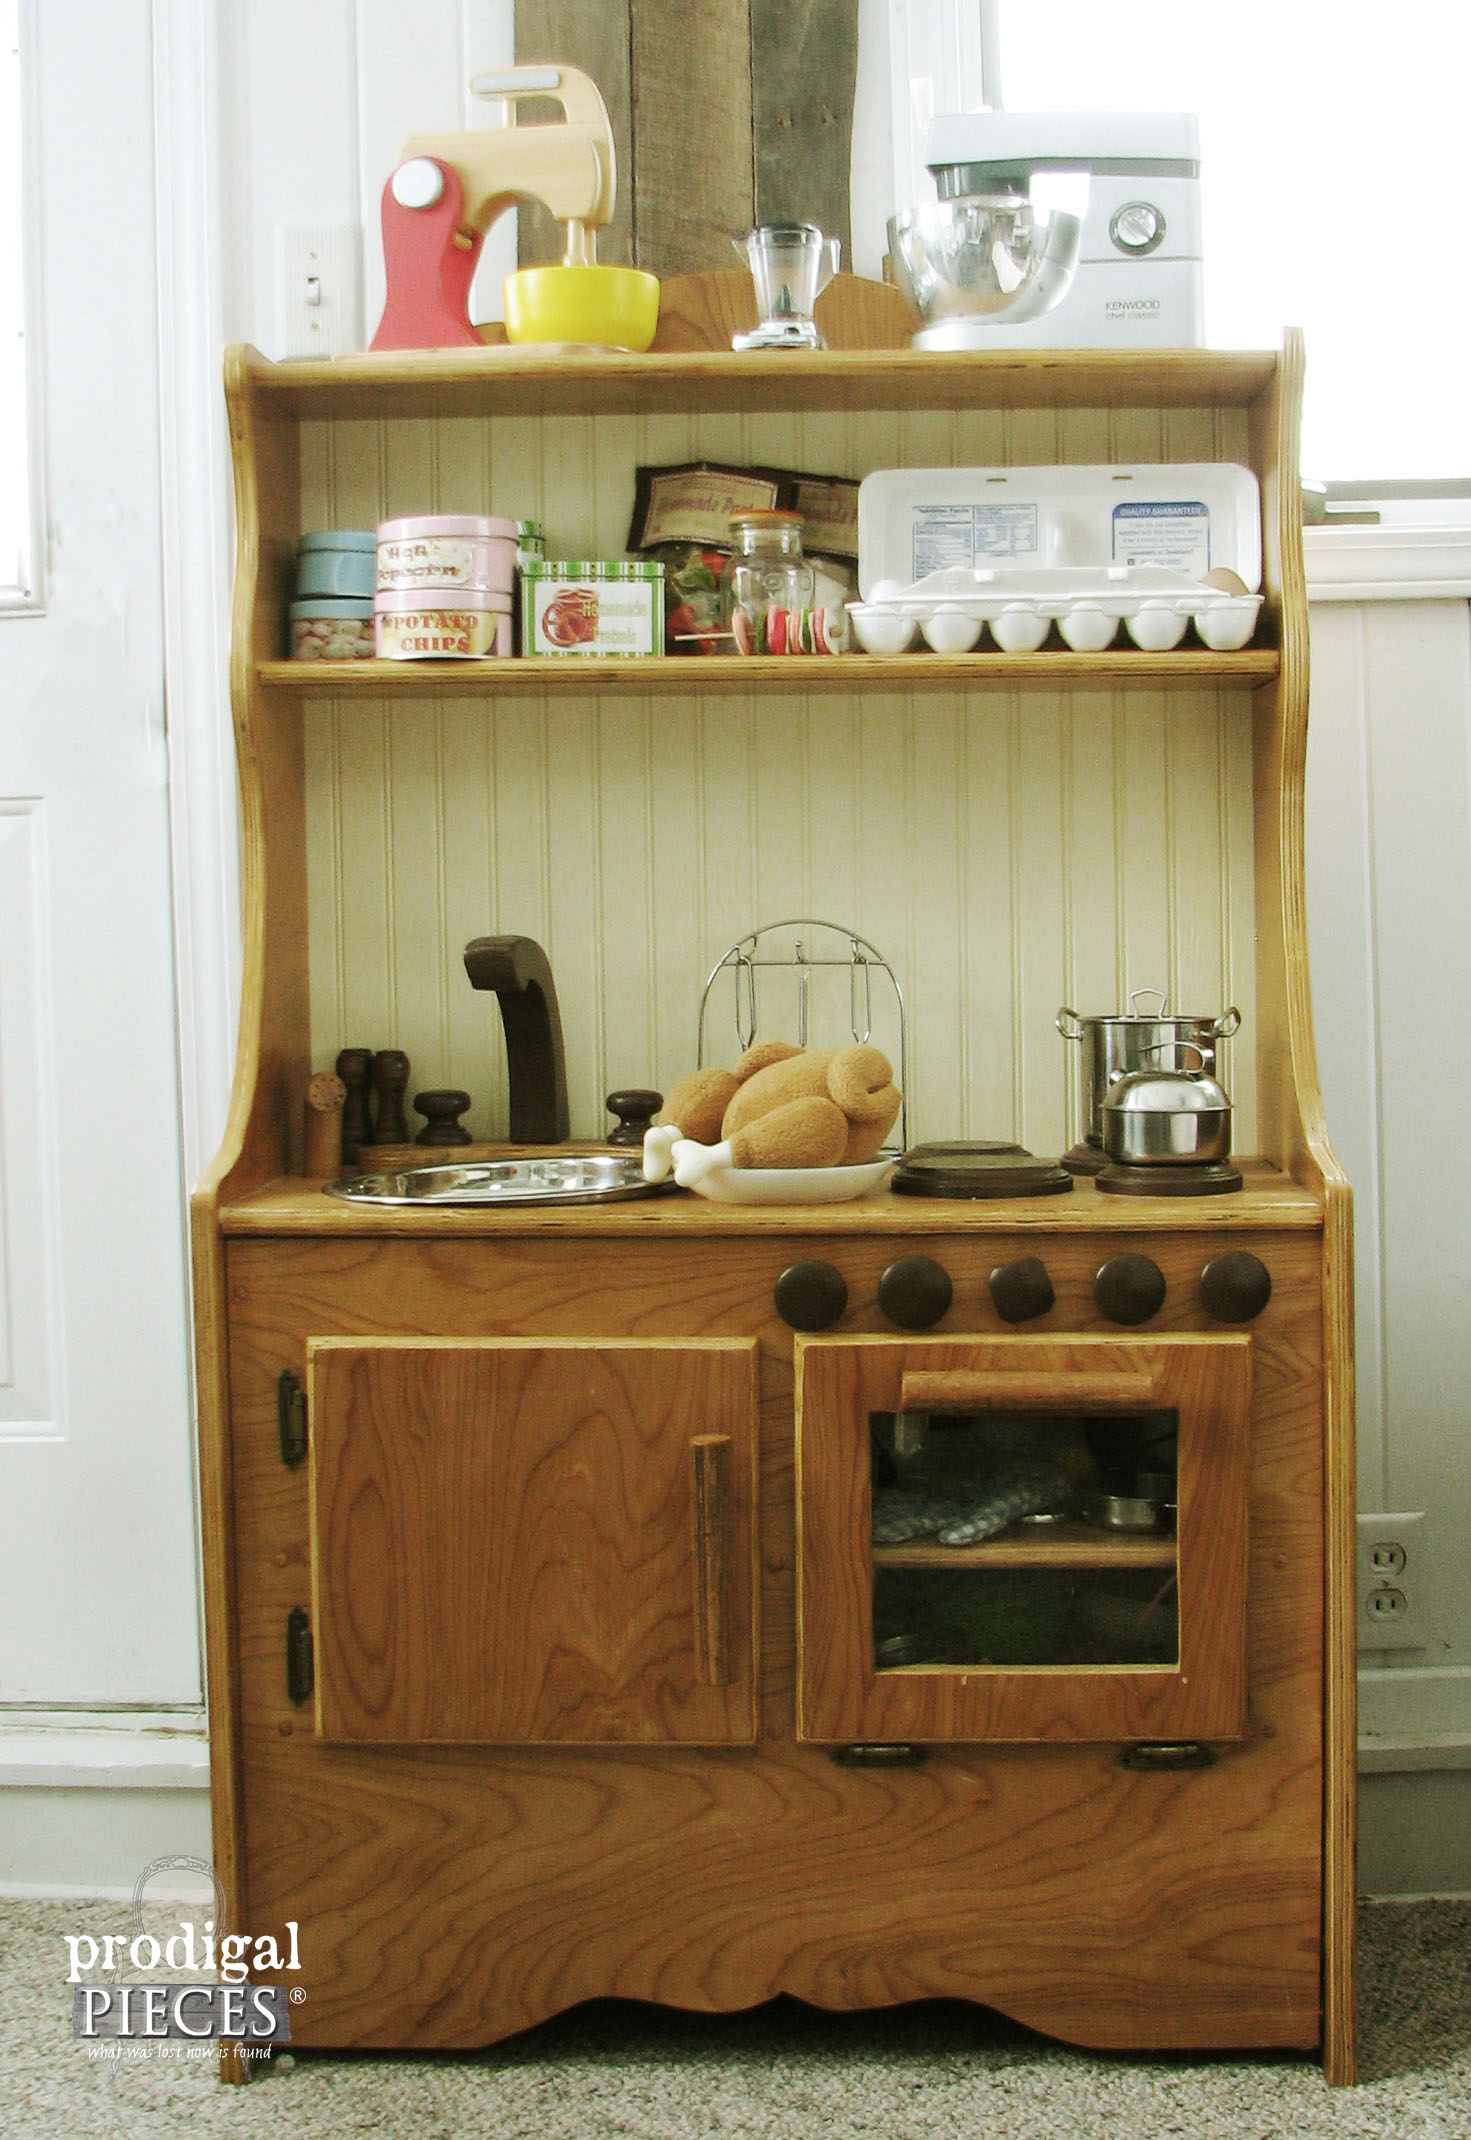 Handmade Wooden Toy Pretend Play Kitchen By Prodigal Pieces Www Prodigalpieces